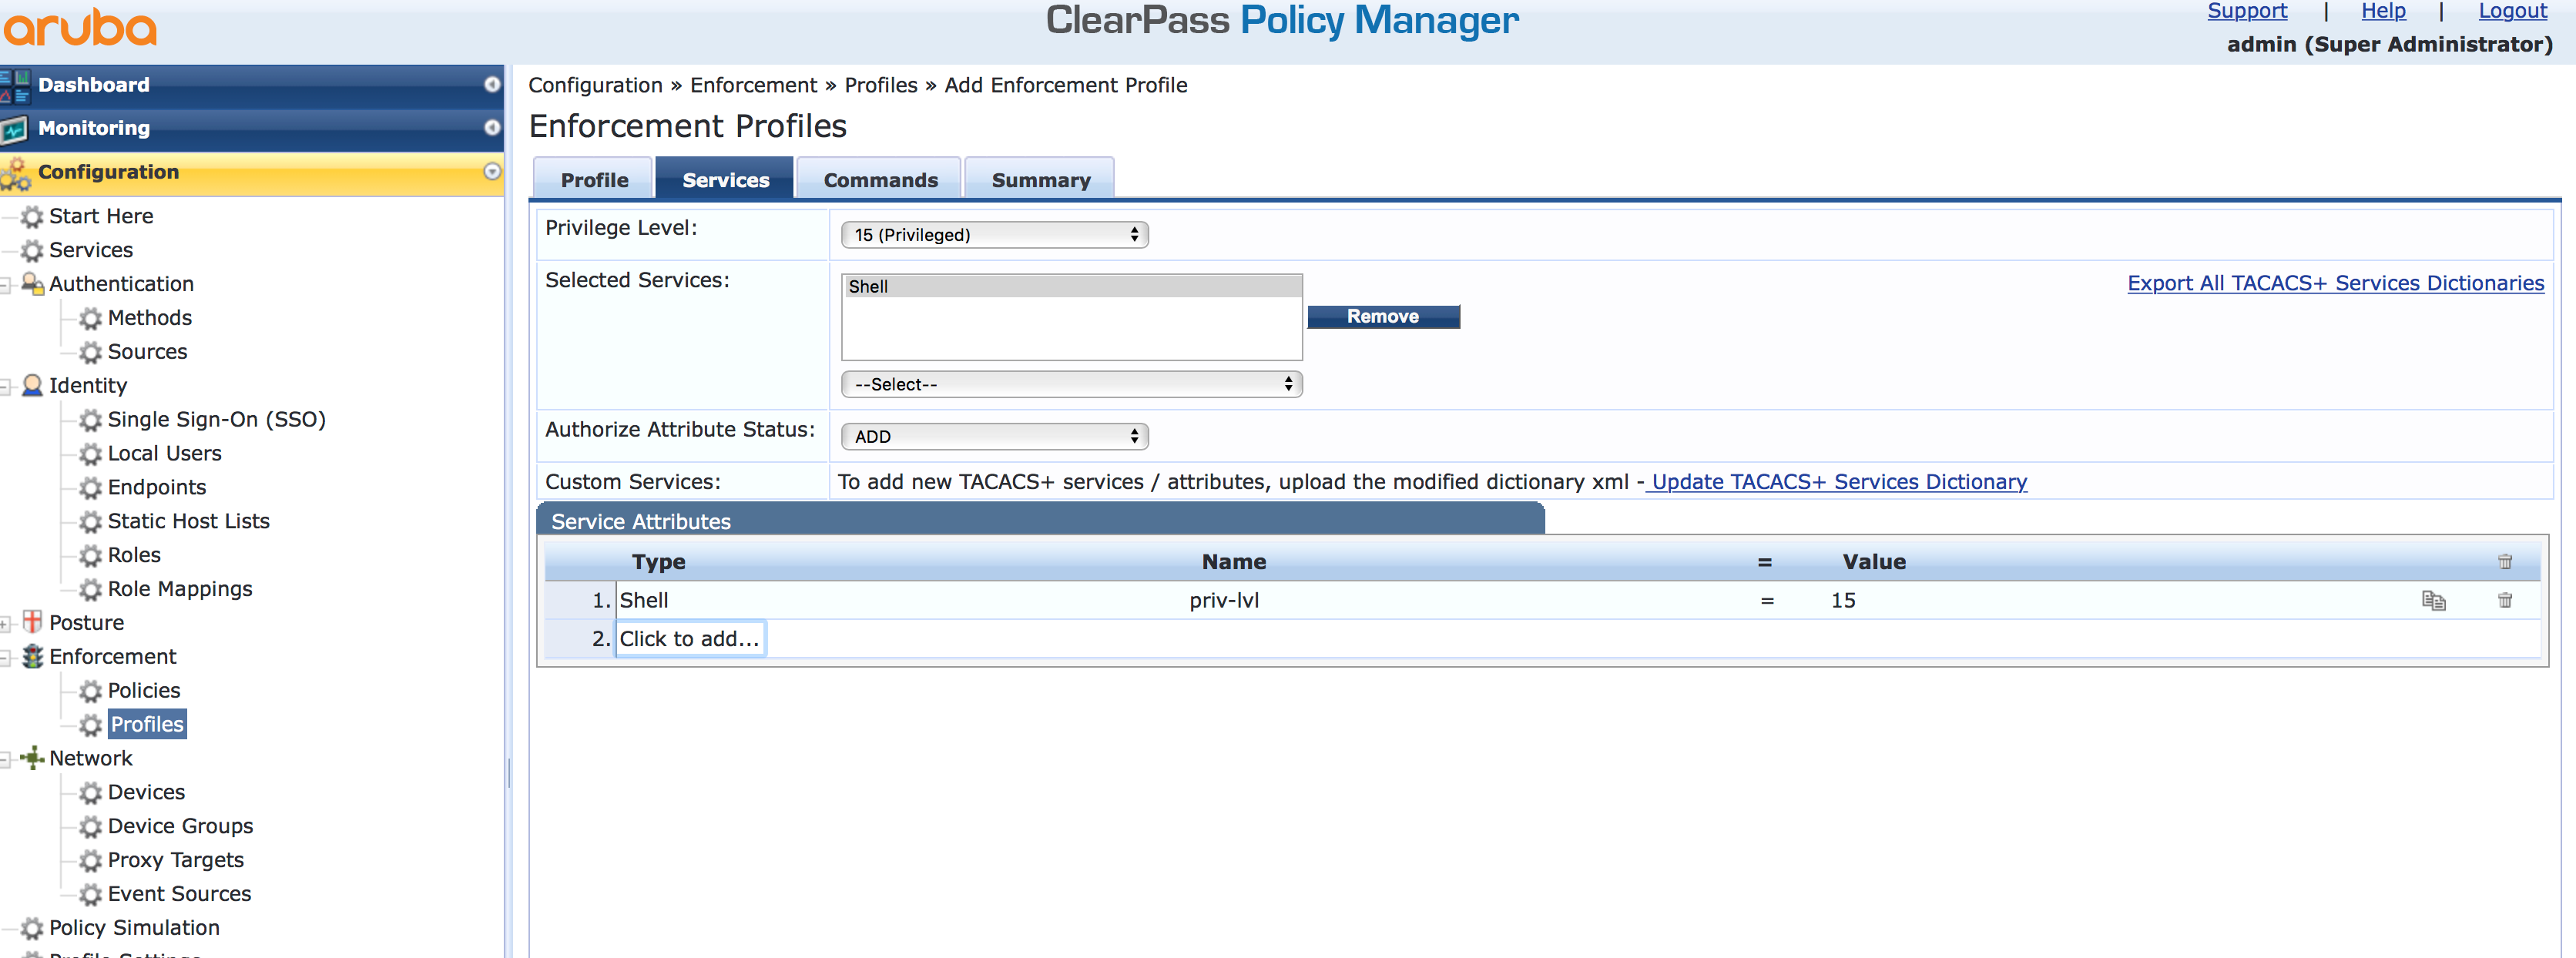 Operator Login - Add Enforcement TACACS Profile Services in ClearPass